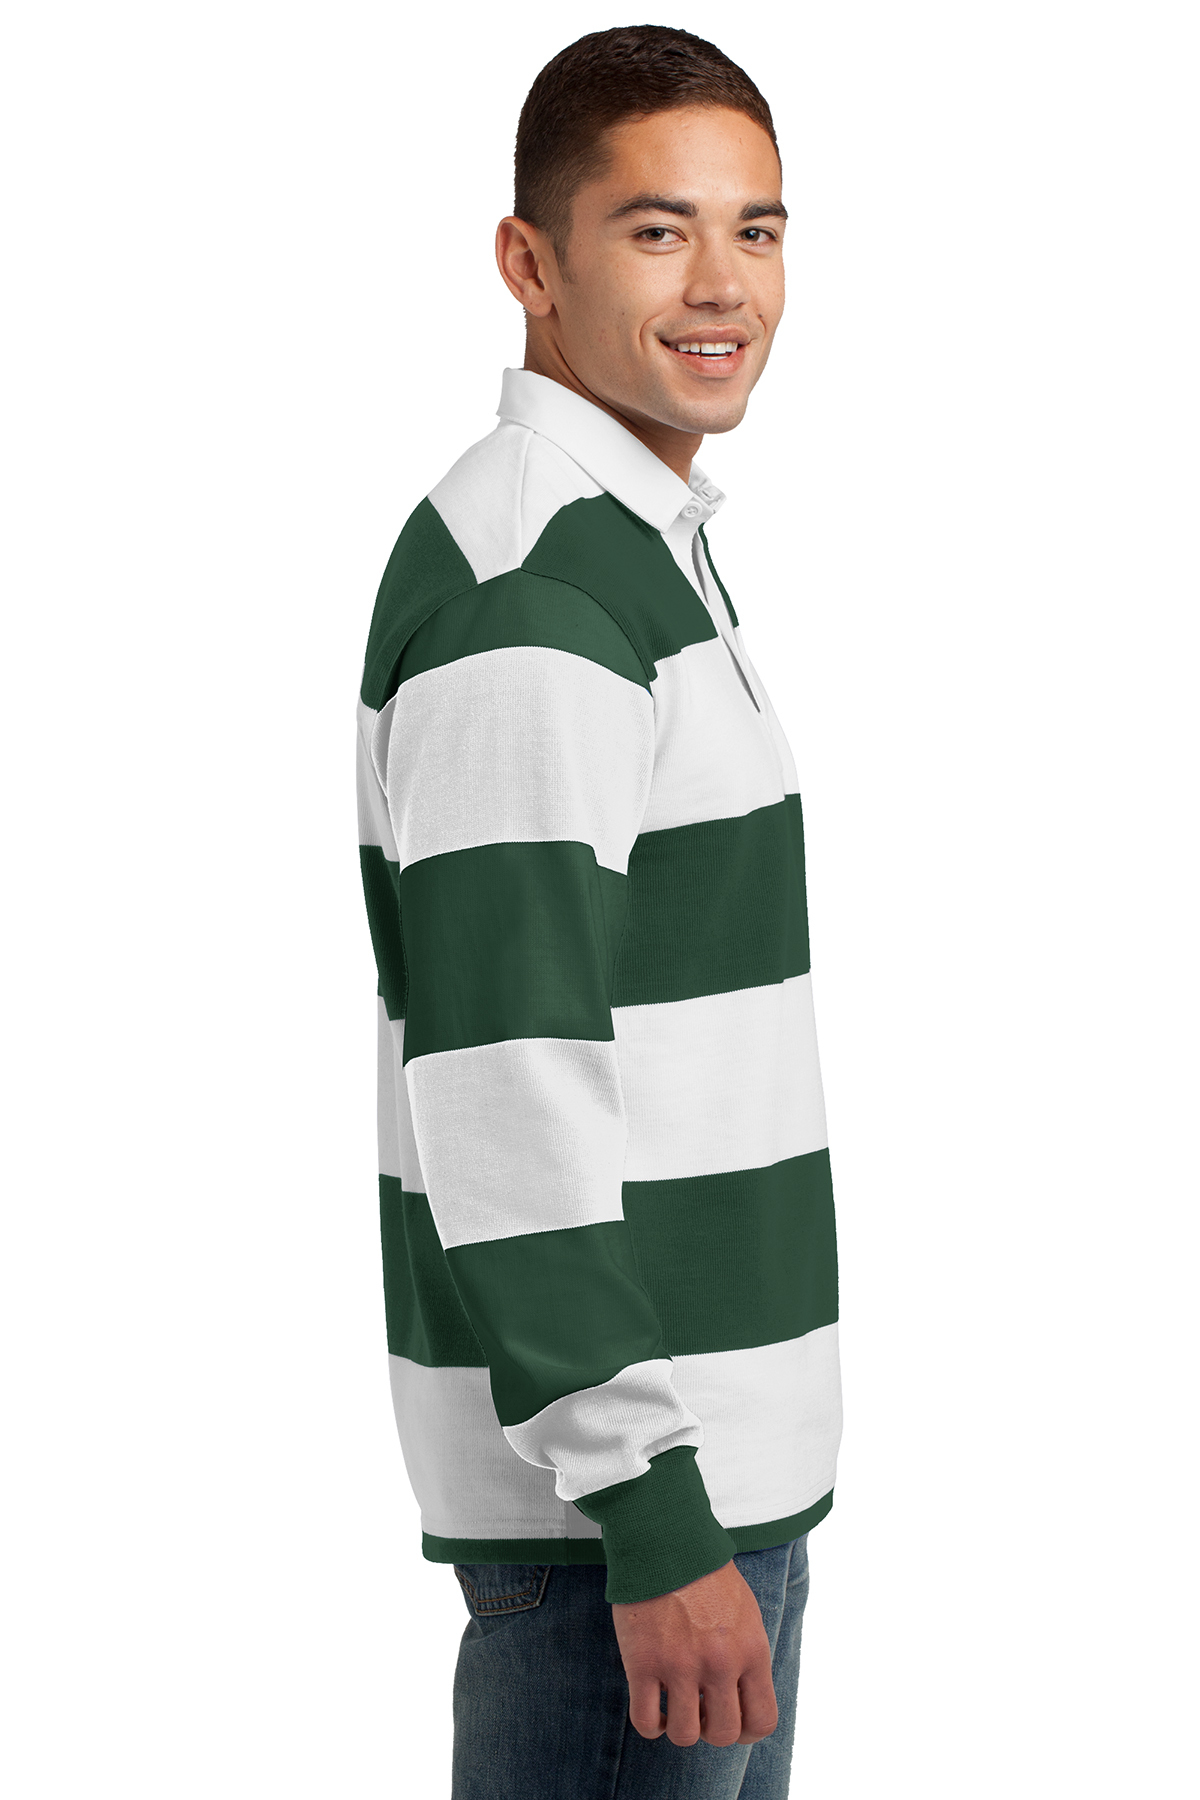 572add4c739 ... Sport-Tek® Classic Long Sleeve Rugby Polo. A maximum of 8 logos have  been uploaded. Please remove a logo from My Logos to continue